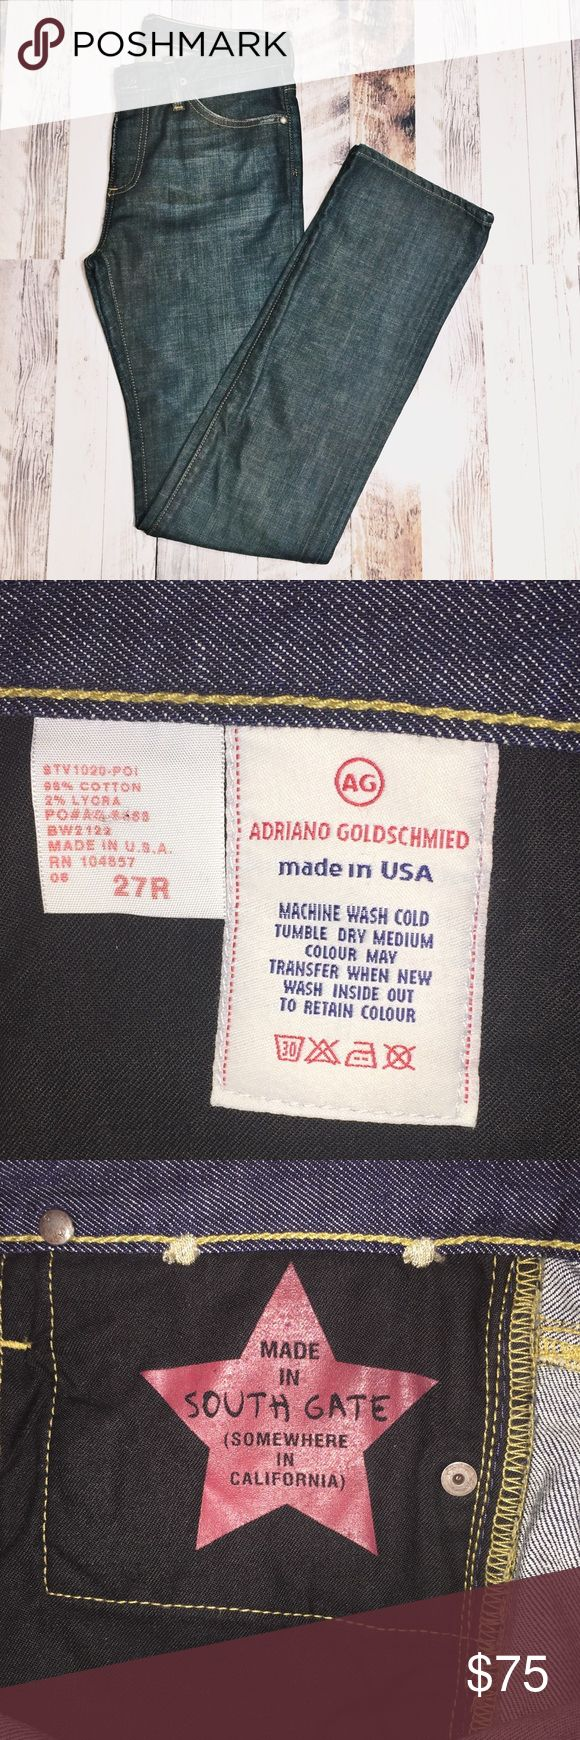 Adriana Goldschmied Distress dark wash blue jeans, mid rise, gold details back pockets, made in US, in like new condition. Women size 27 R AG Adriano Goldschmied Jeans Straight Leg